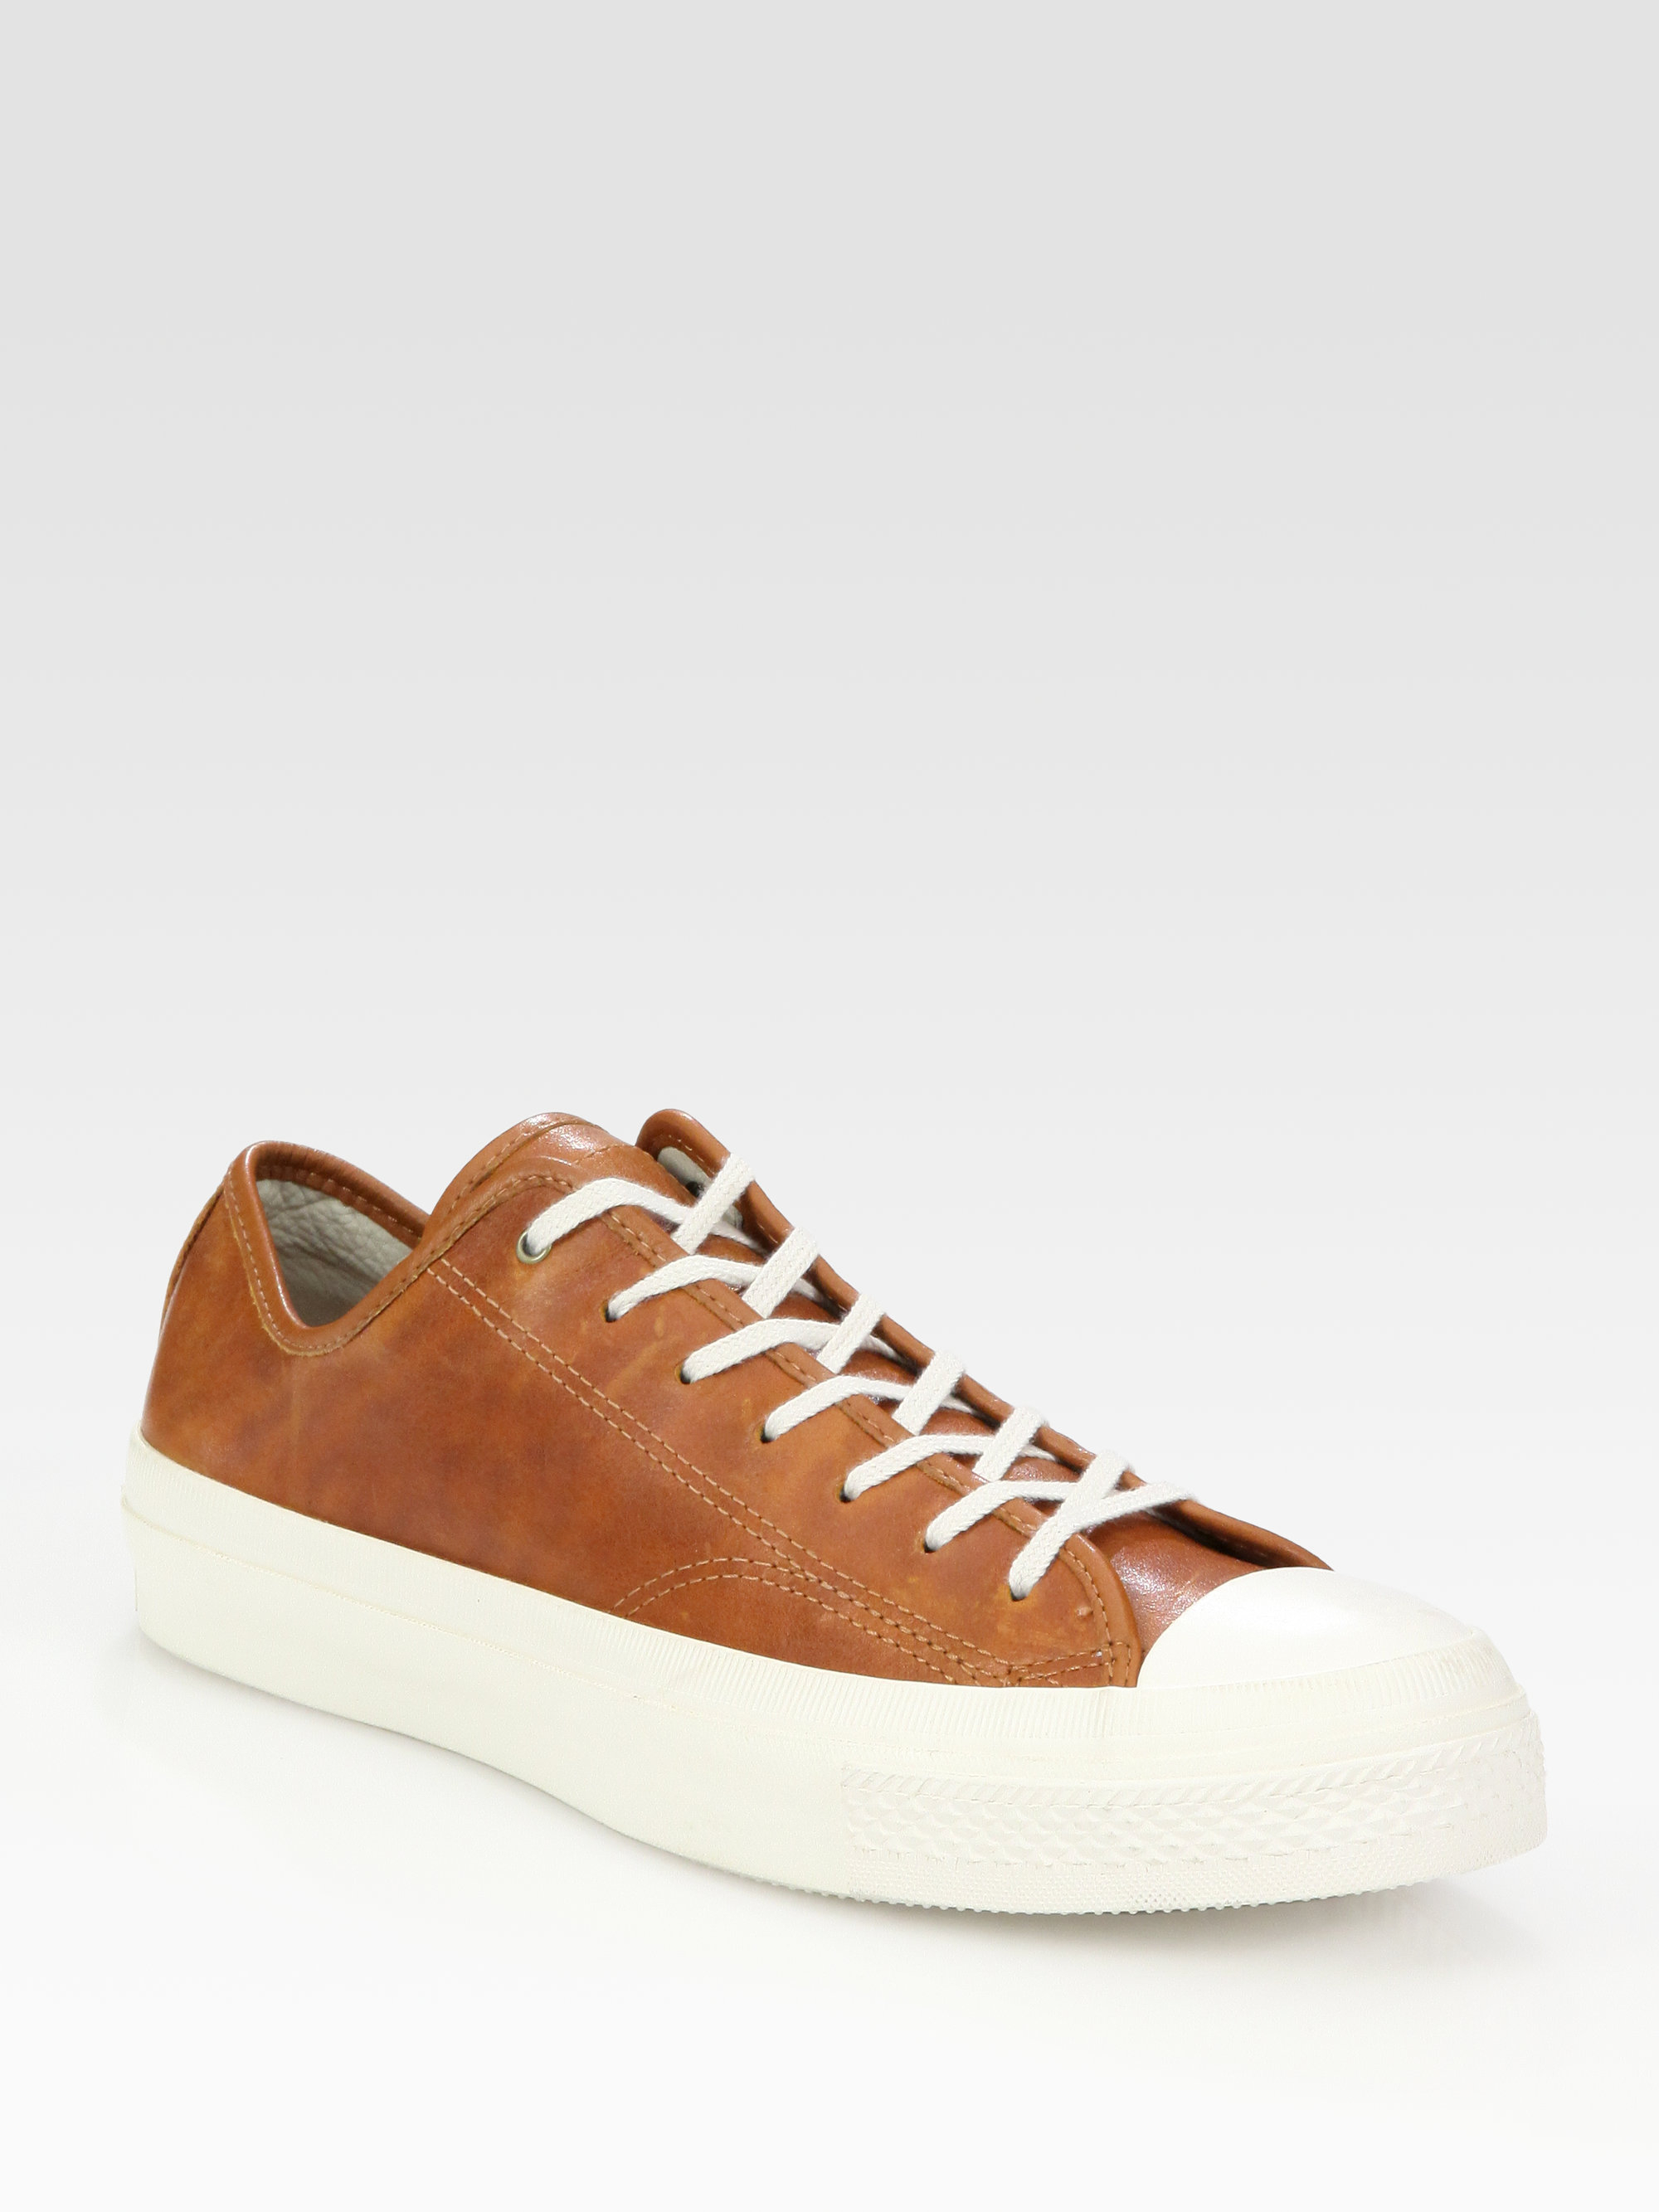 bdd3b7089f2e best price converse chuck taylor all star 70 hi leather 0342c 75c5e  cheap lyst  converse chuck taylor leather high rand oxfords in brown for men 3cc3c 88305